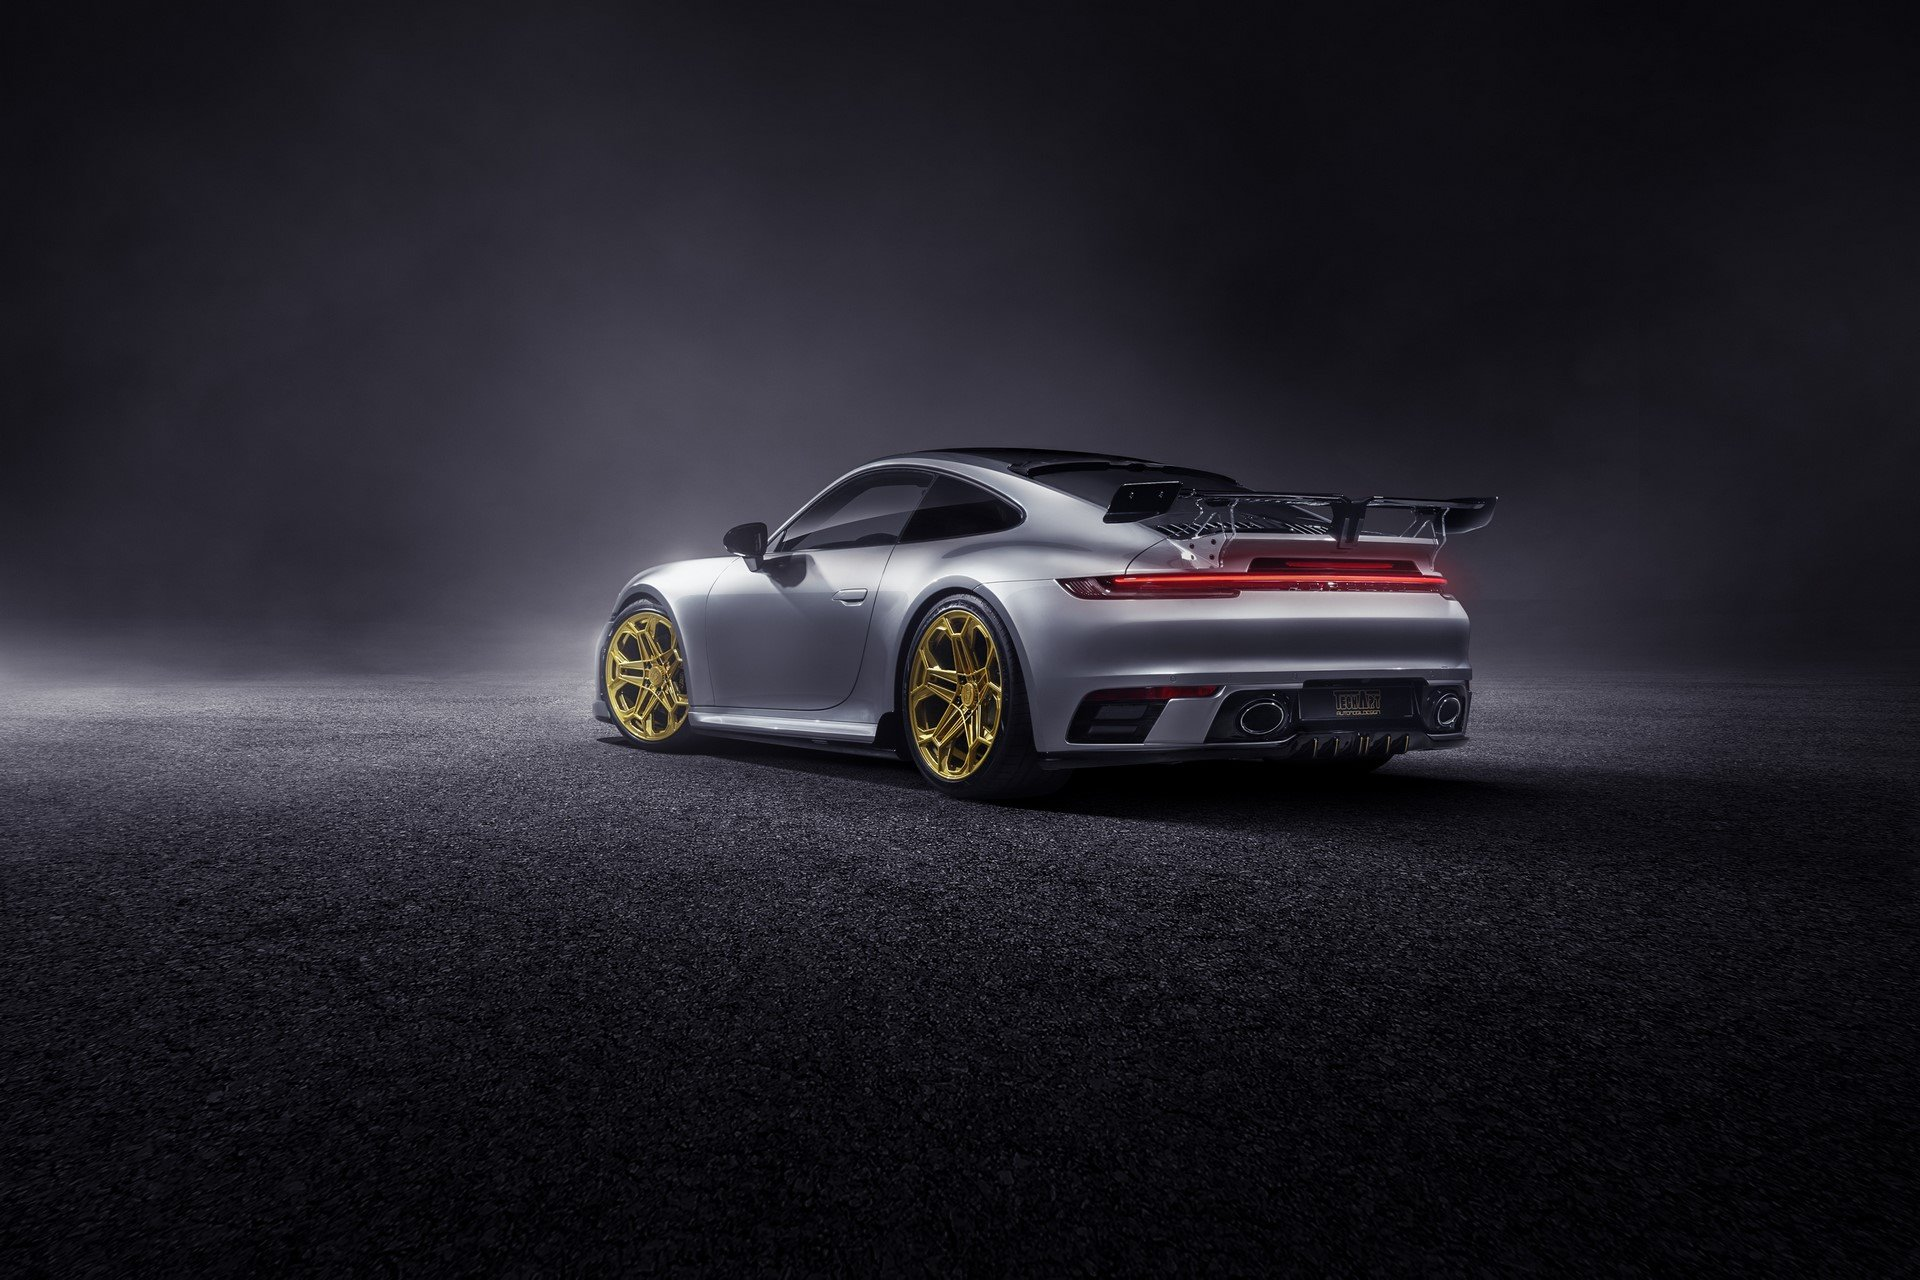 Porsche-911-Carrera-4S-by-TechArt-7